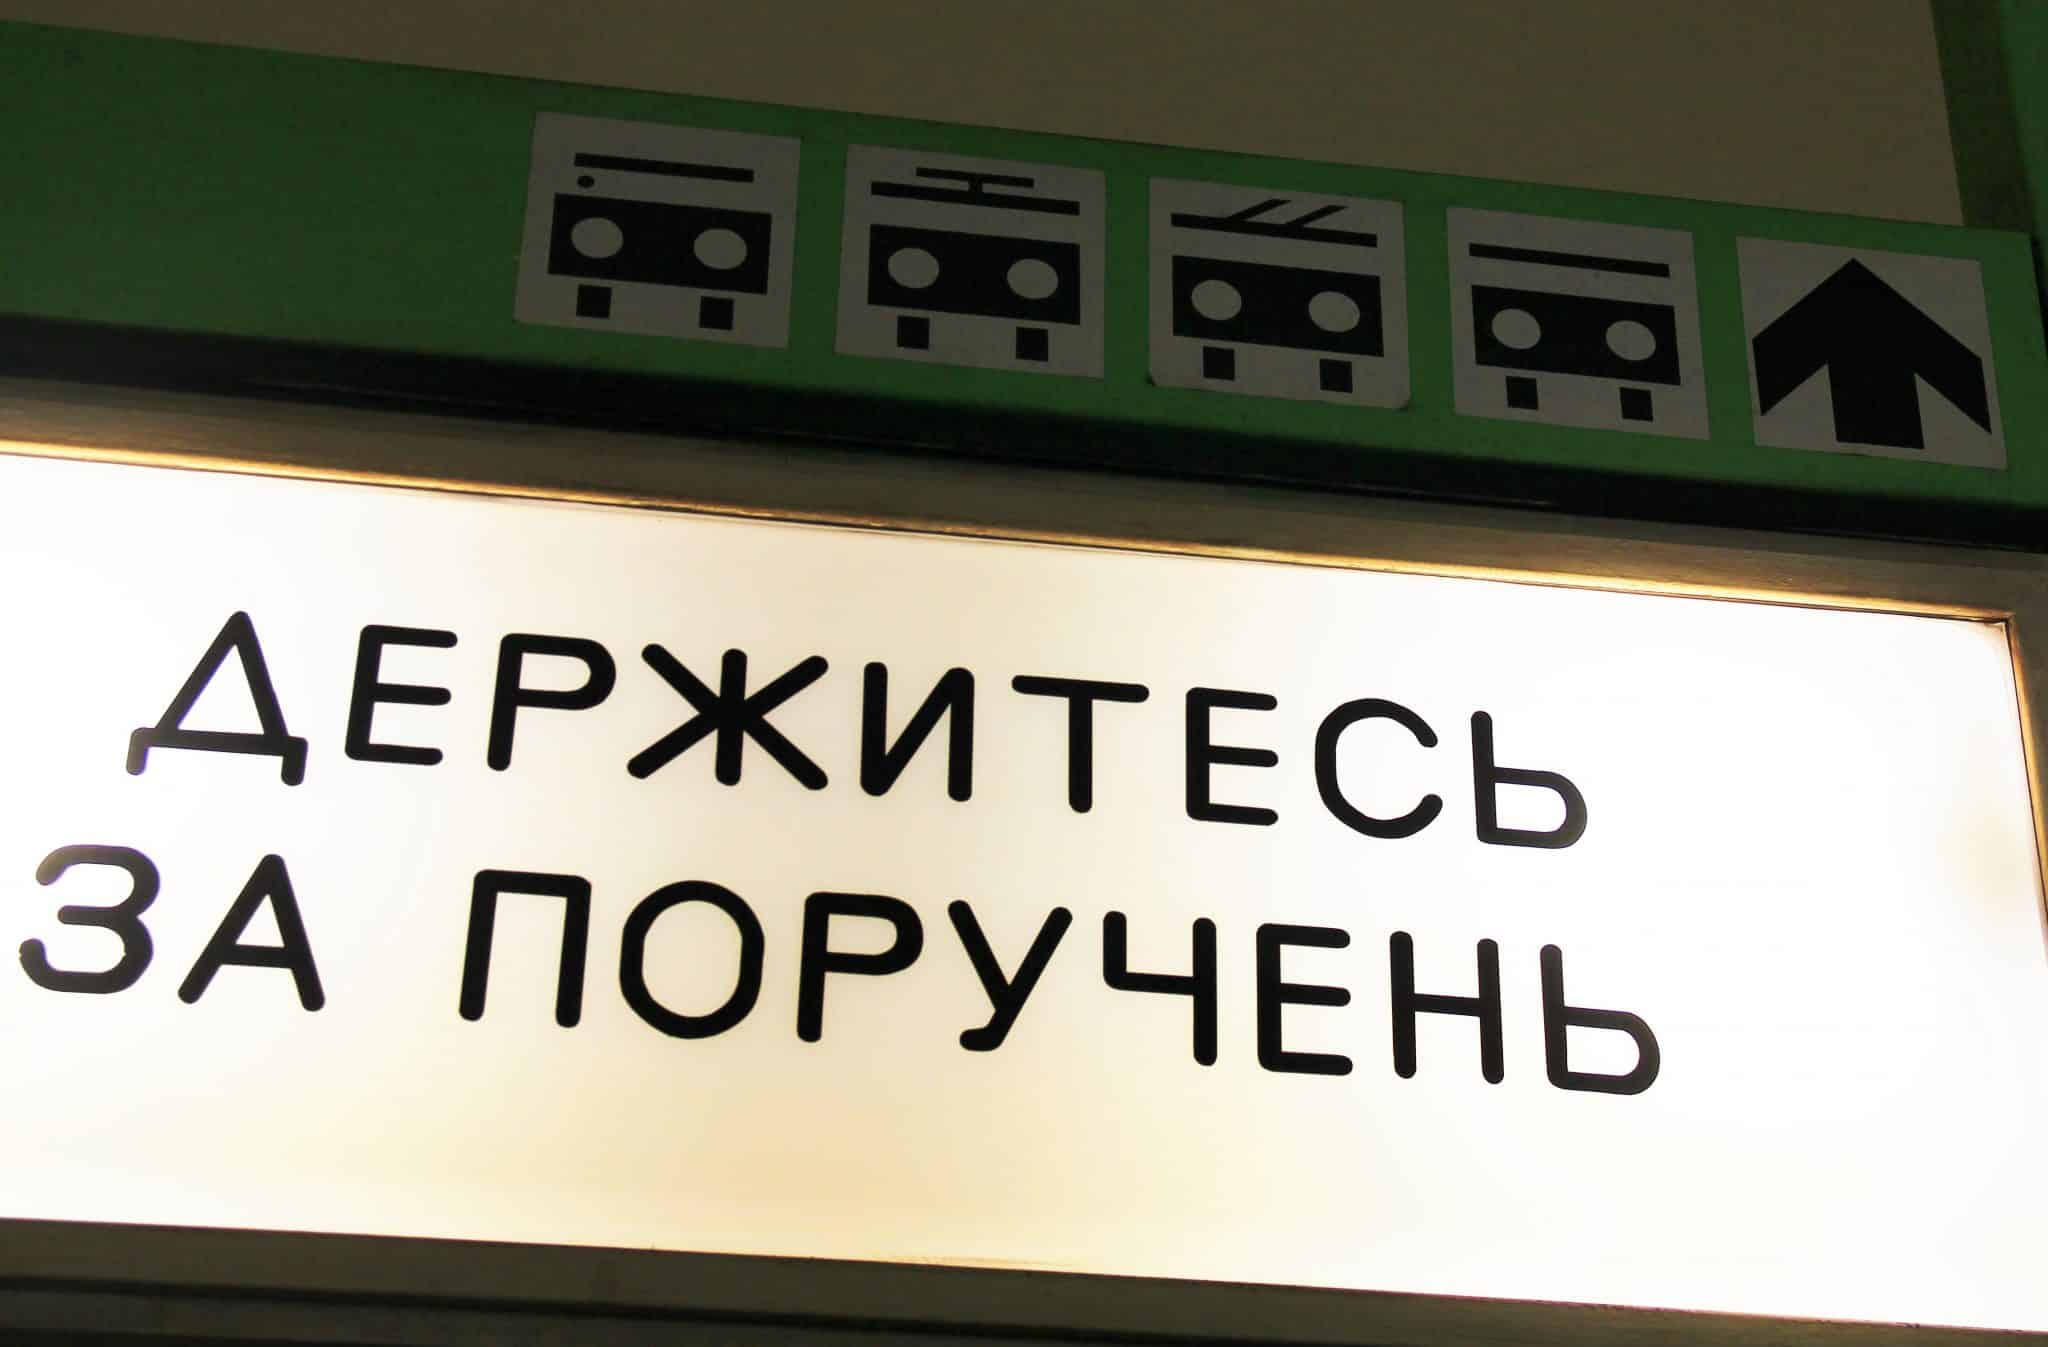 Sign in Russian transport